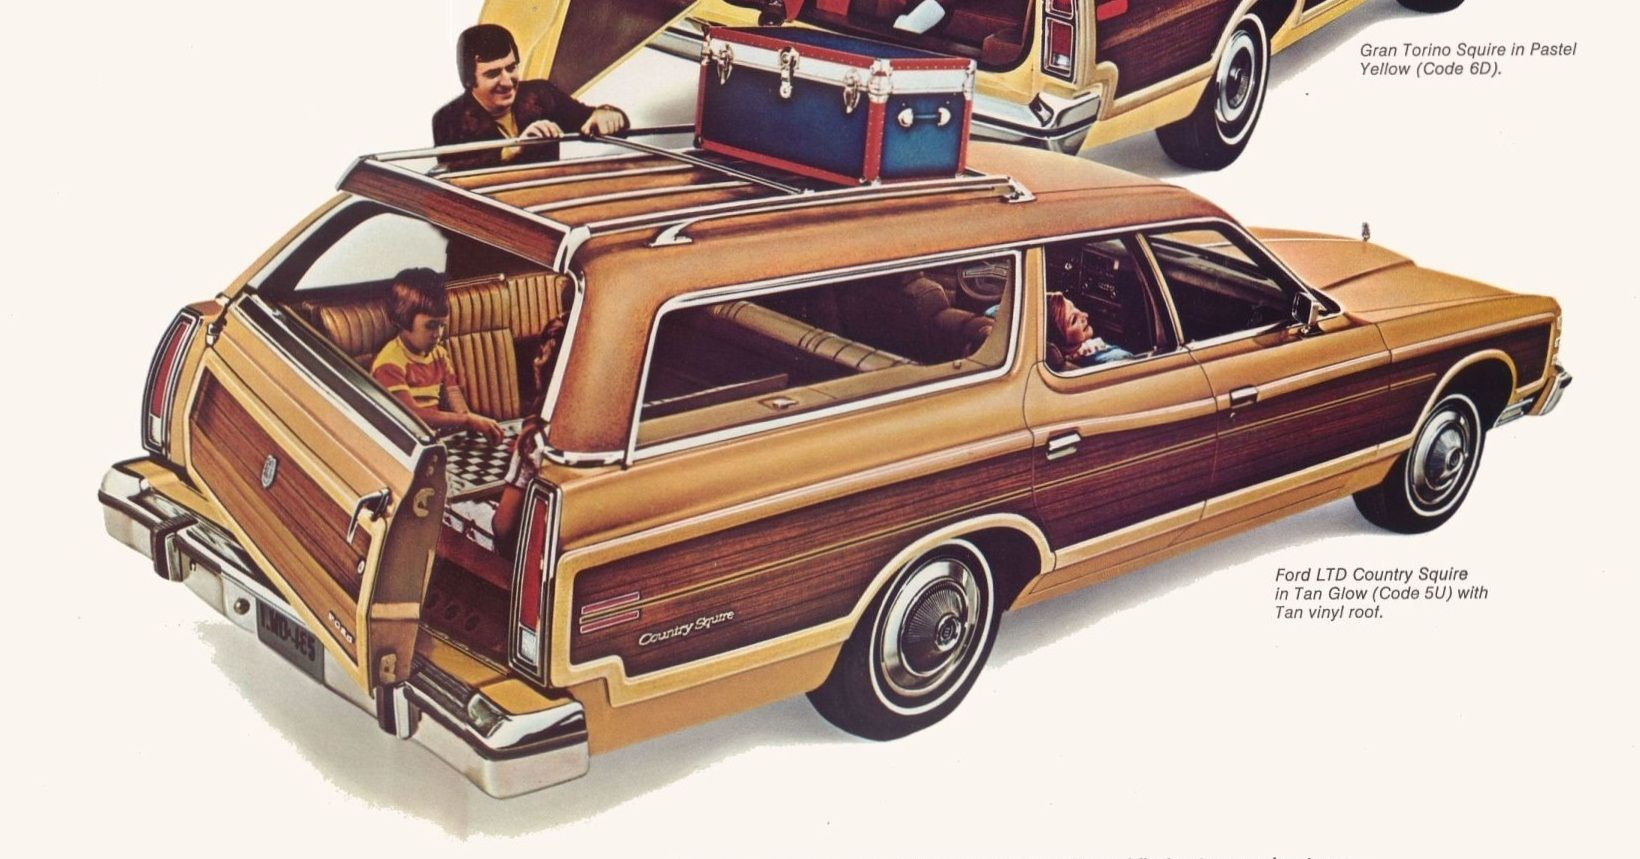 Dual Facing Rear Seats Mostly The 70s Station Wagon